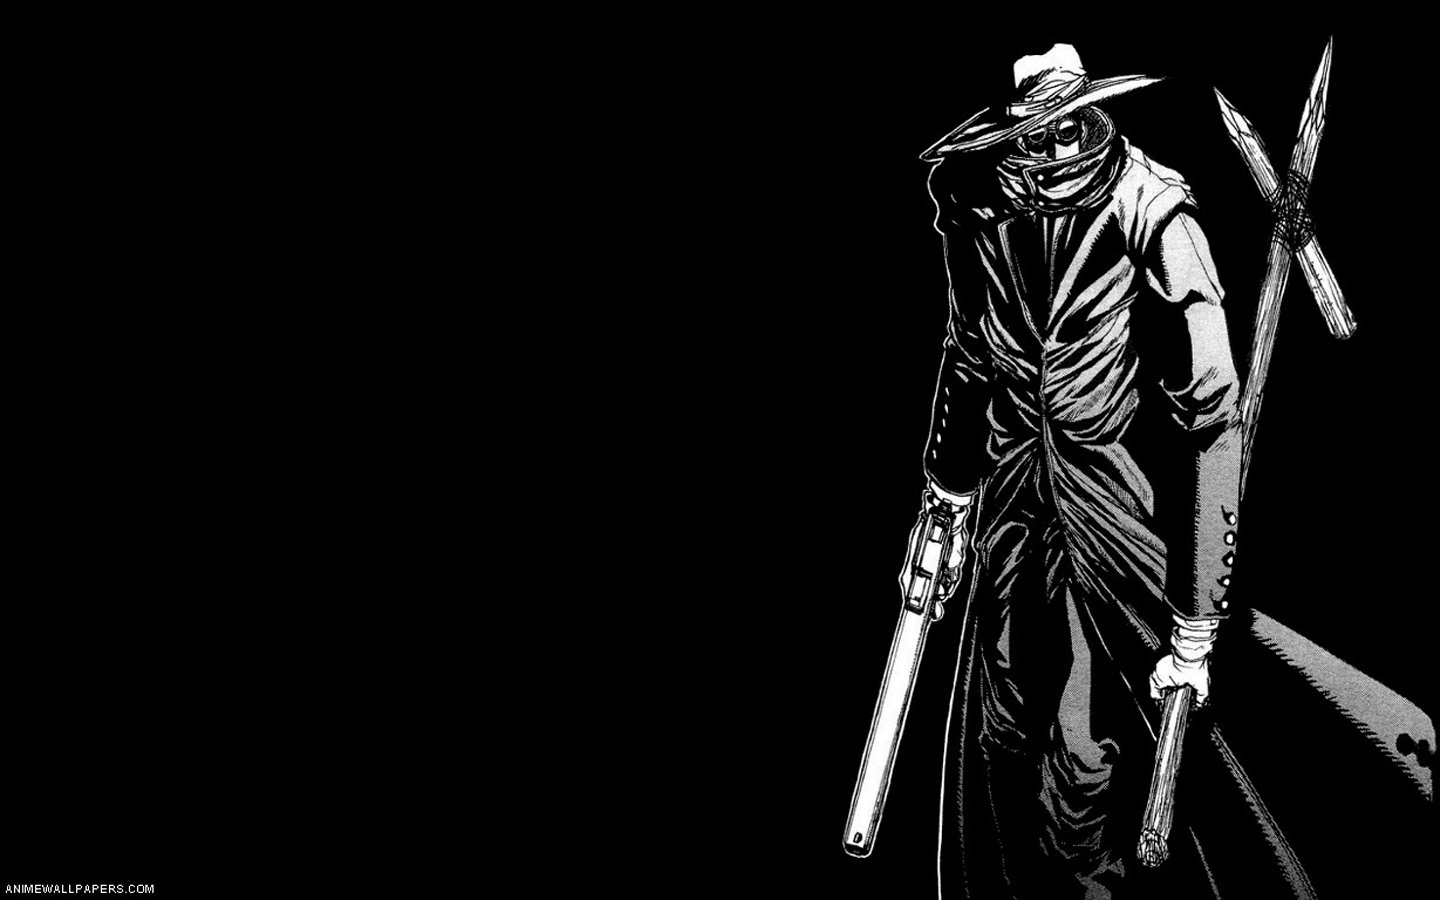 Free Hellsing high quality wallpaper ID:329959 for hd 1440x900 desktop